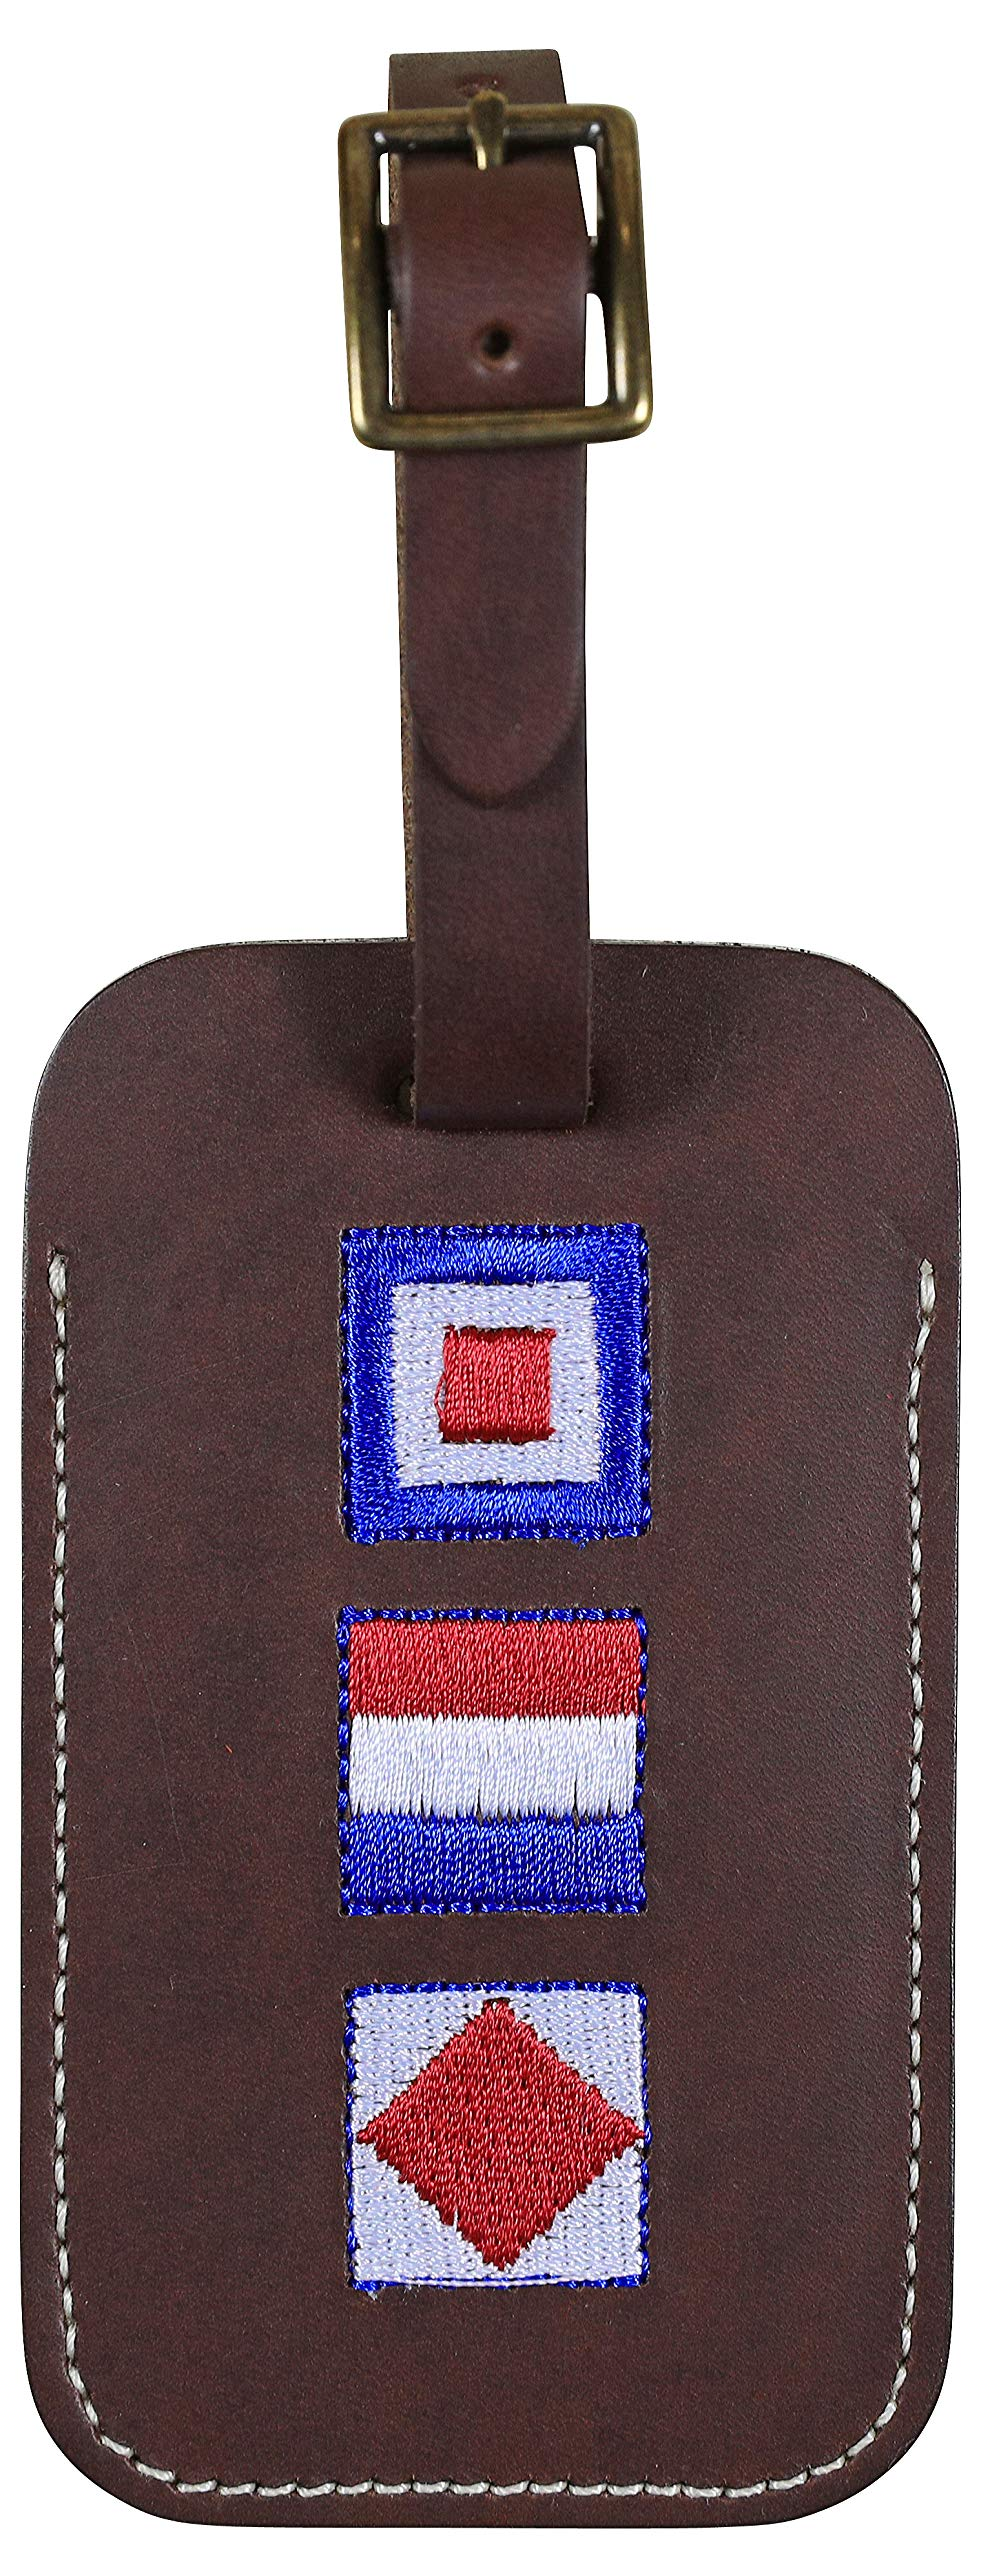 Maine Made Leather Luggage Tag for Men and Woman - Embroidered WTF Design